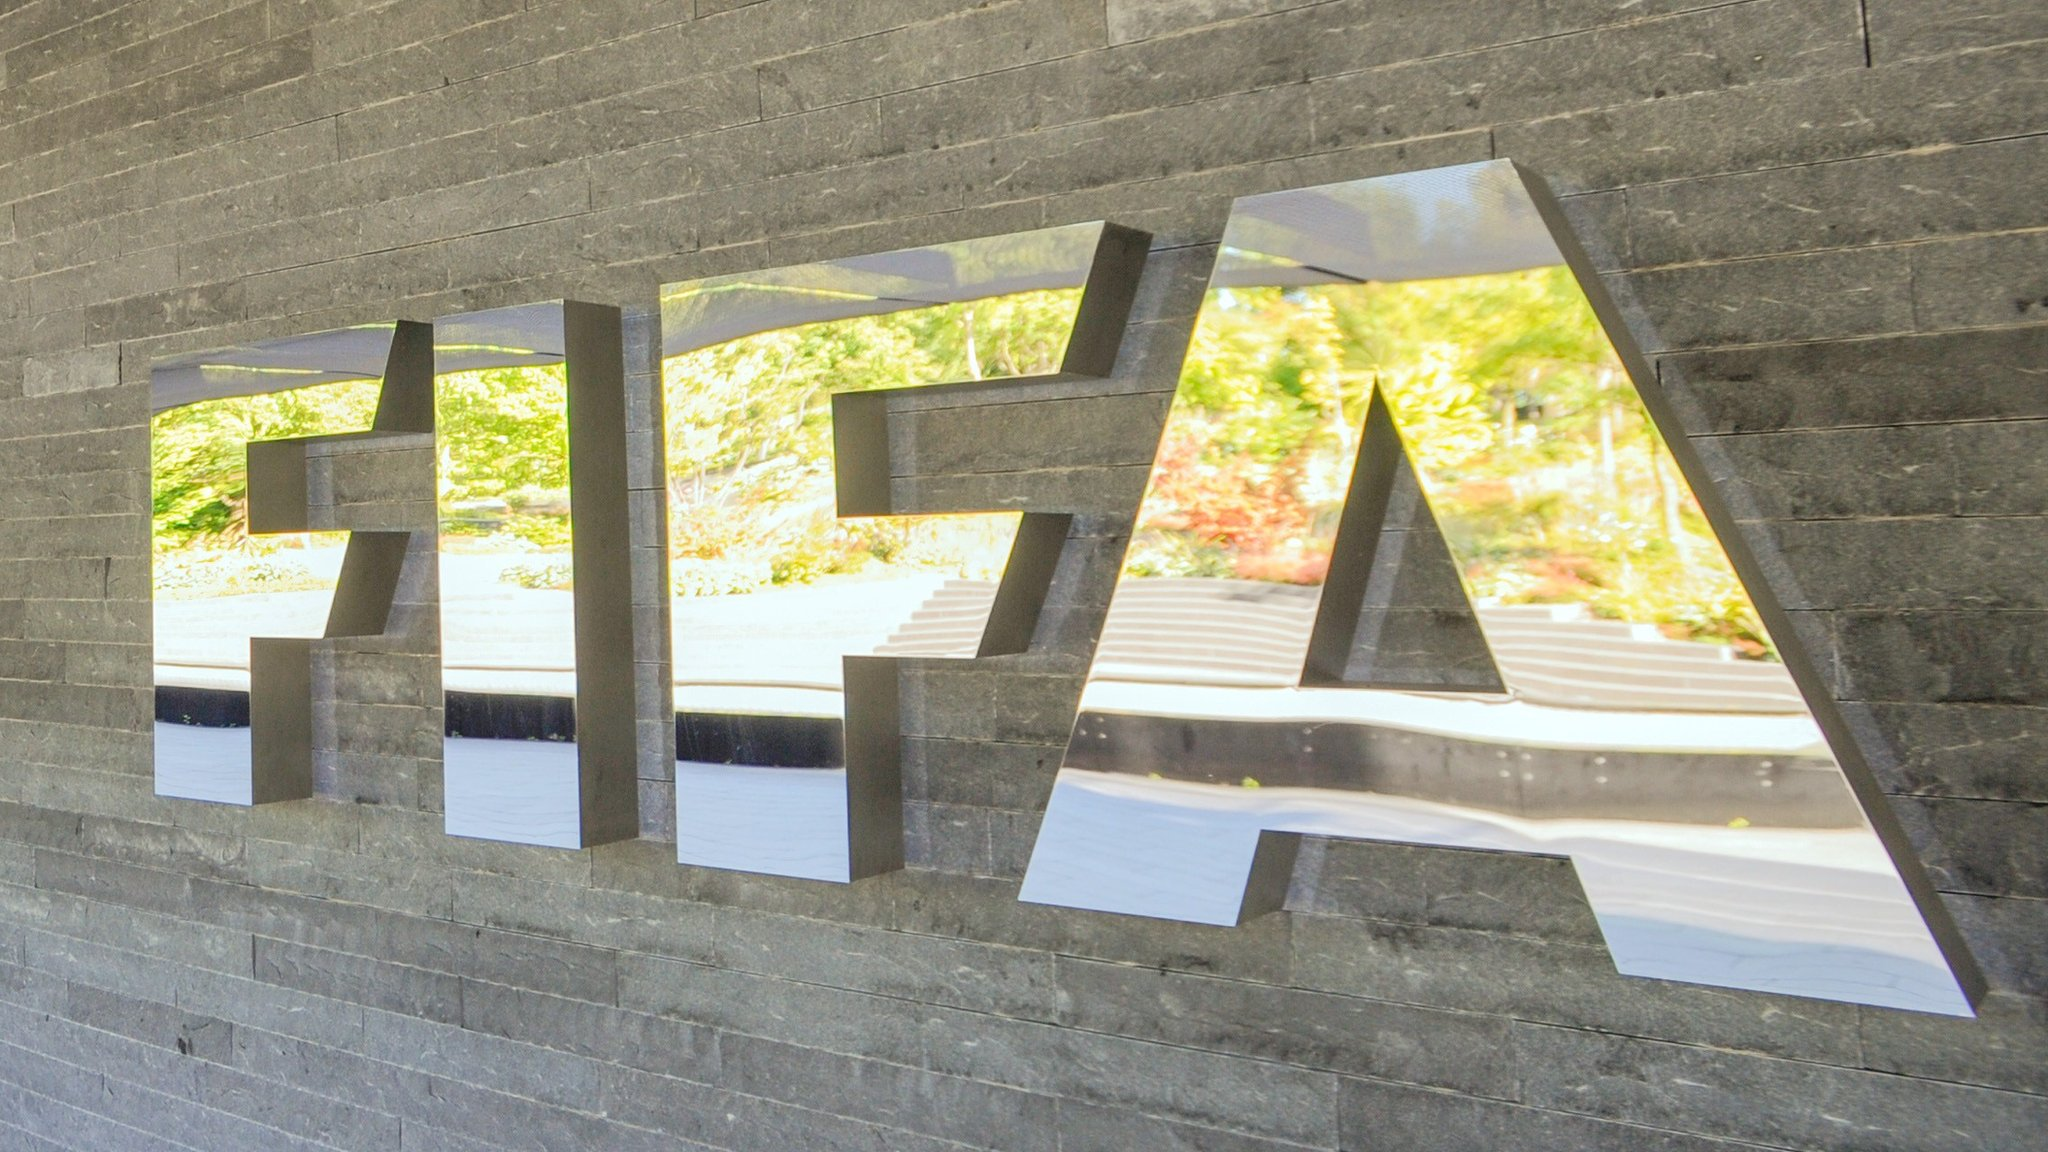 Fifa finds 'insufficient' evidence of doping by Russian World Cup footballers